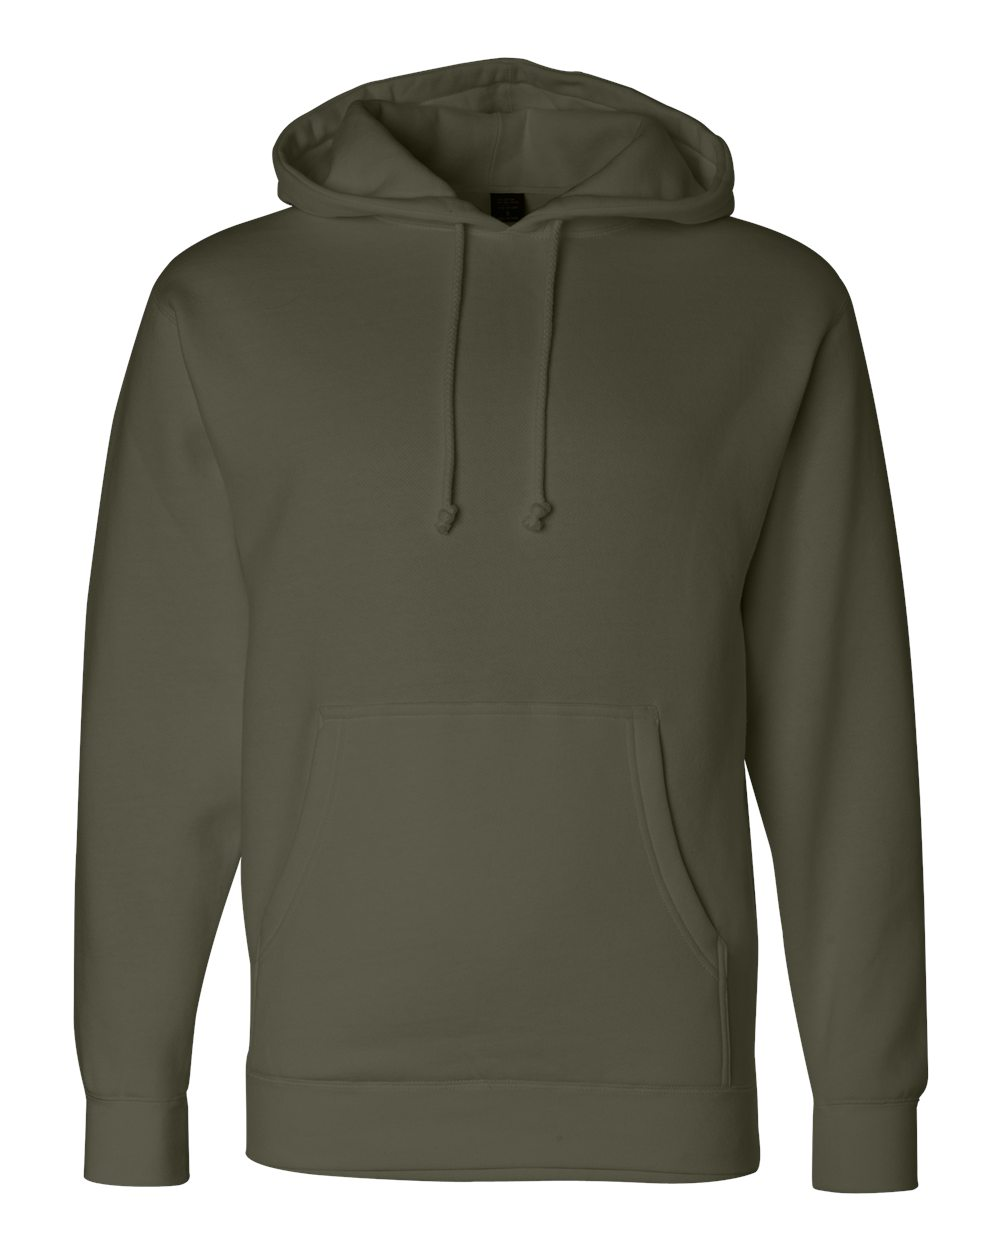 Independent-Trading-Co-Mens-Hooded-Pullover-Sweatshirt-IND4000-up-to-3XL miniature 9